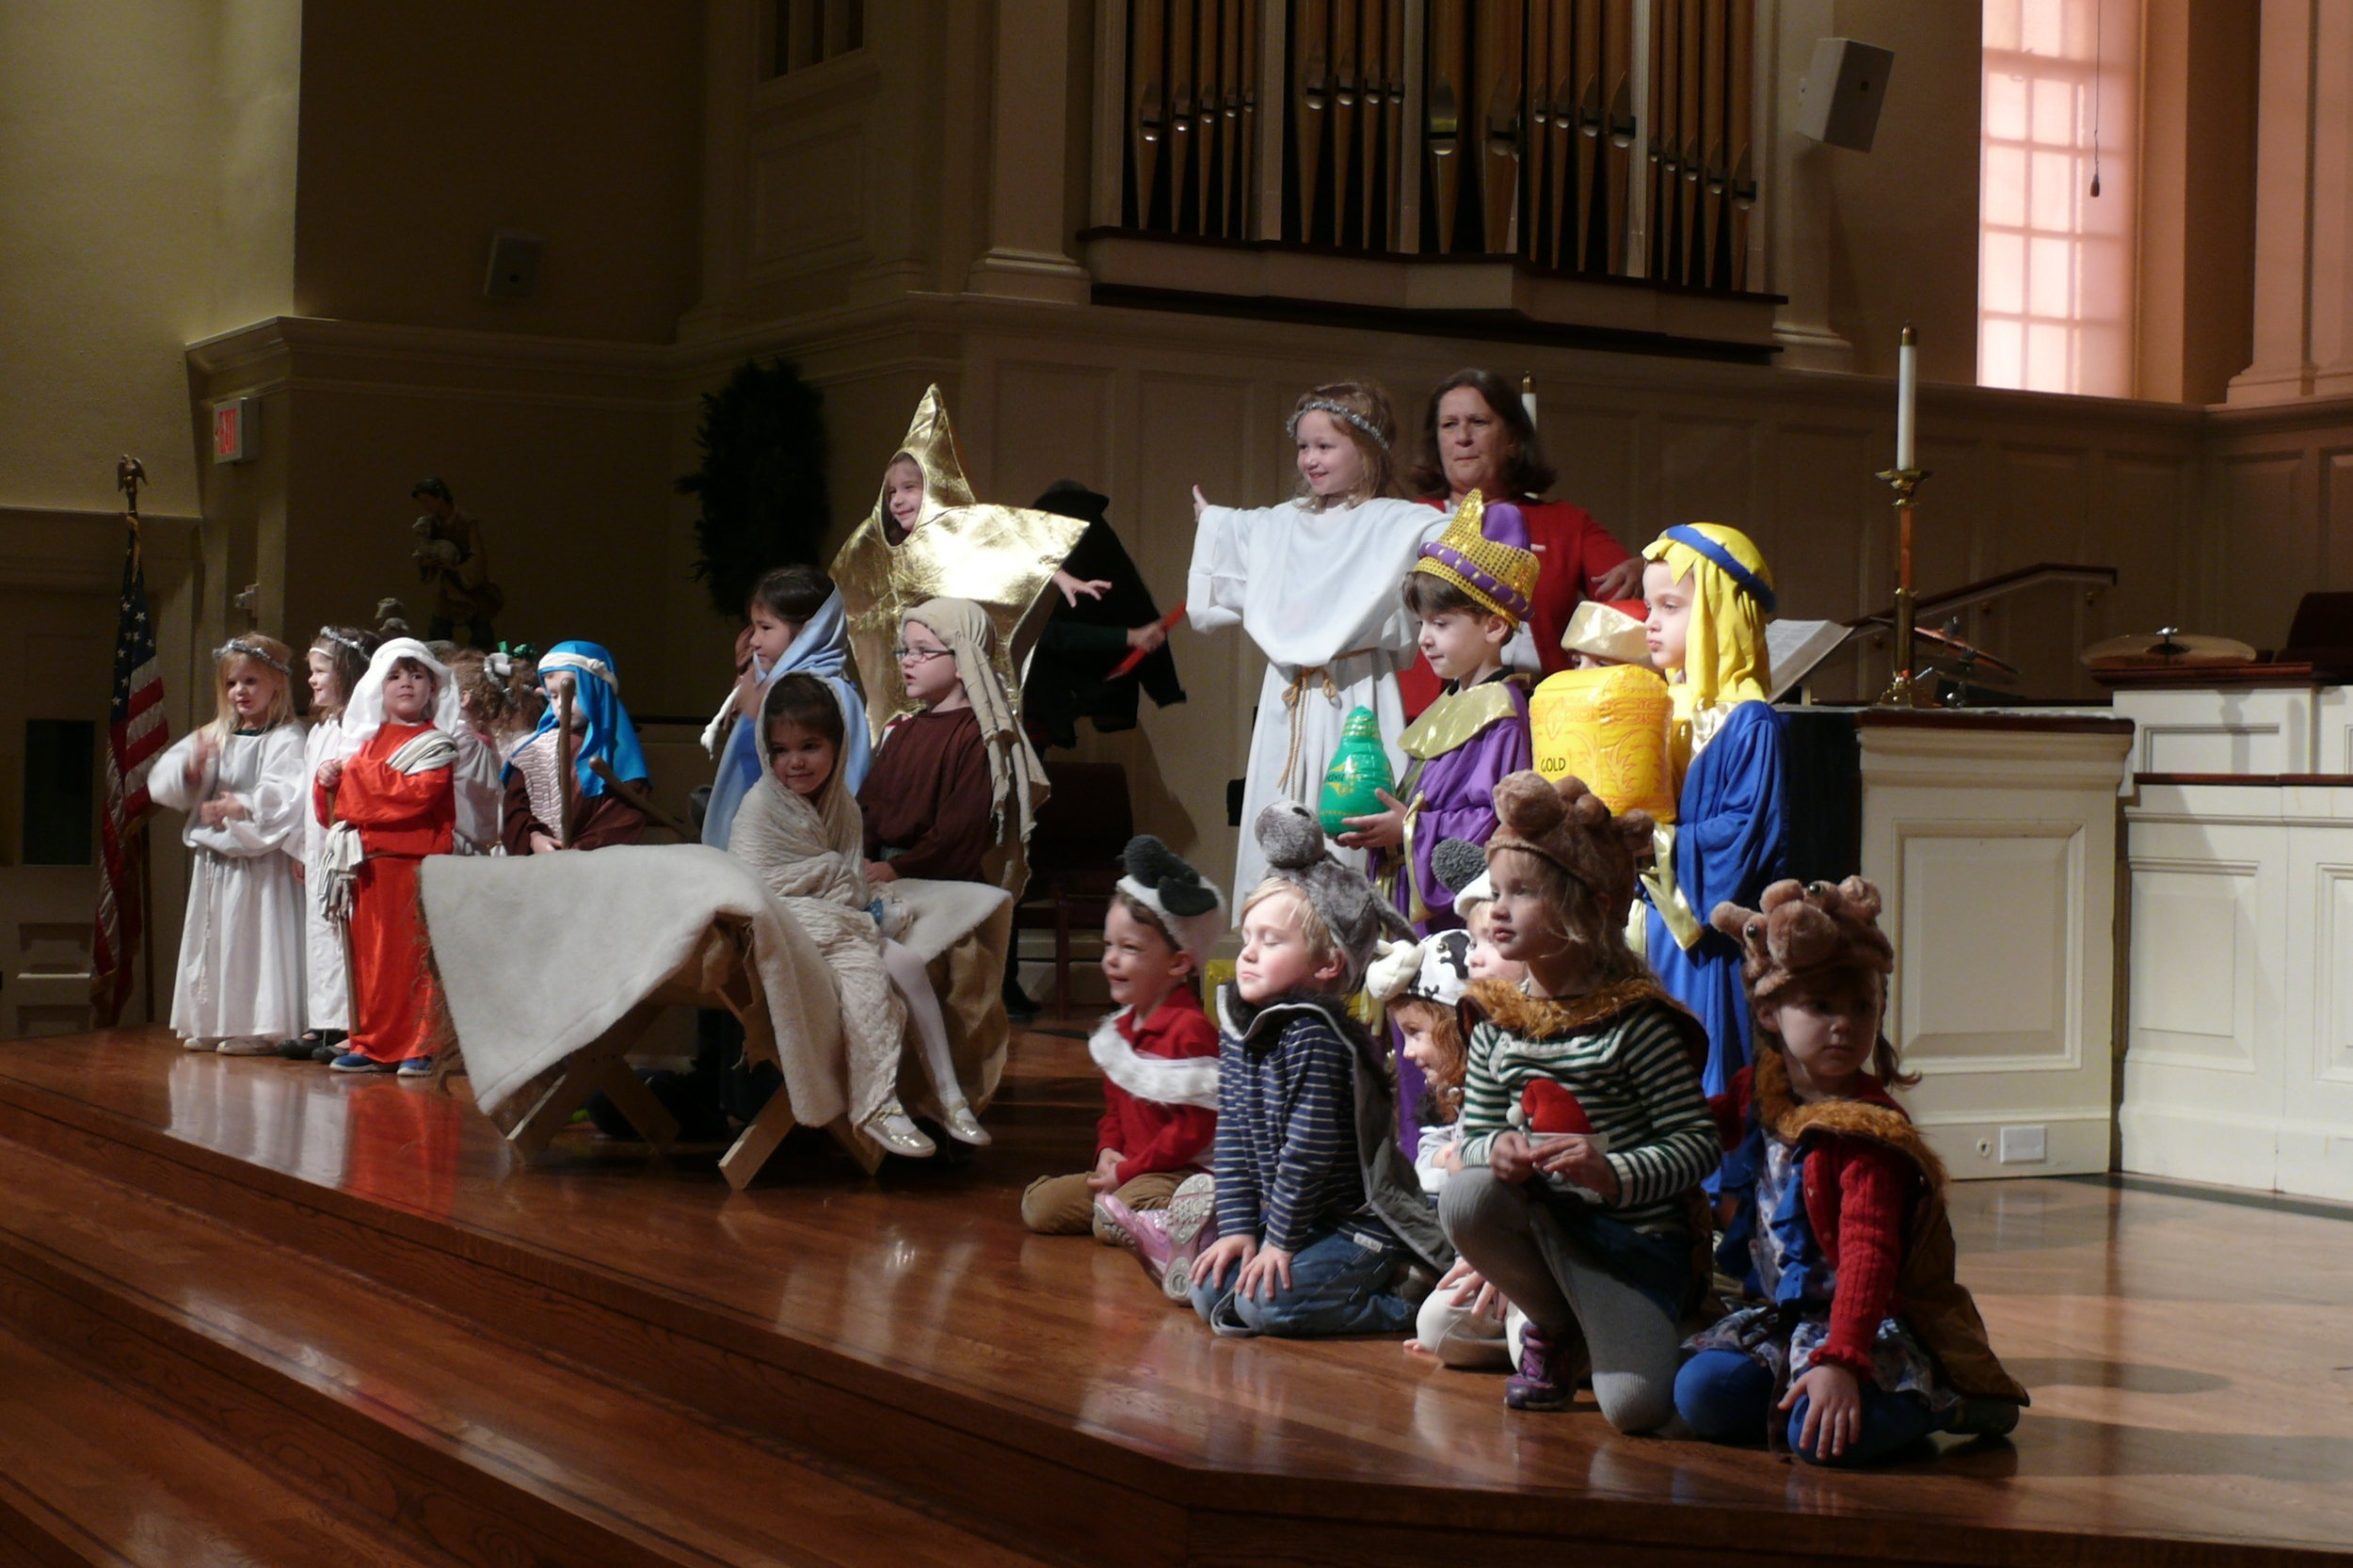 Preschool Chapel - Our Chapel is filled with the wiggles, giggles, love, and laughter of our young preschool children every Wednesday morning. We provide Christian education to our preschoolers and teach children to love Jesus.